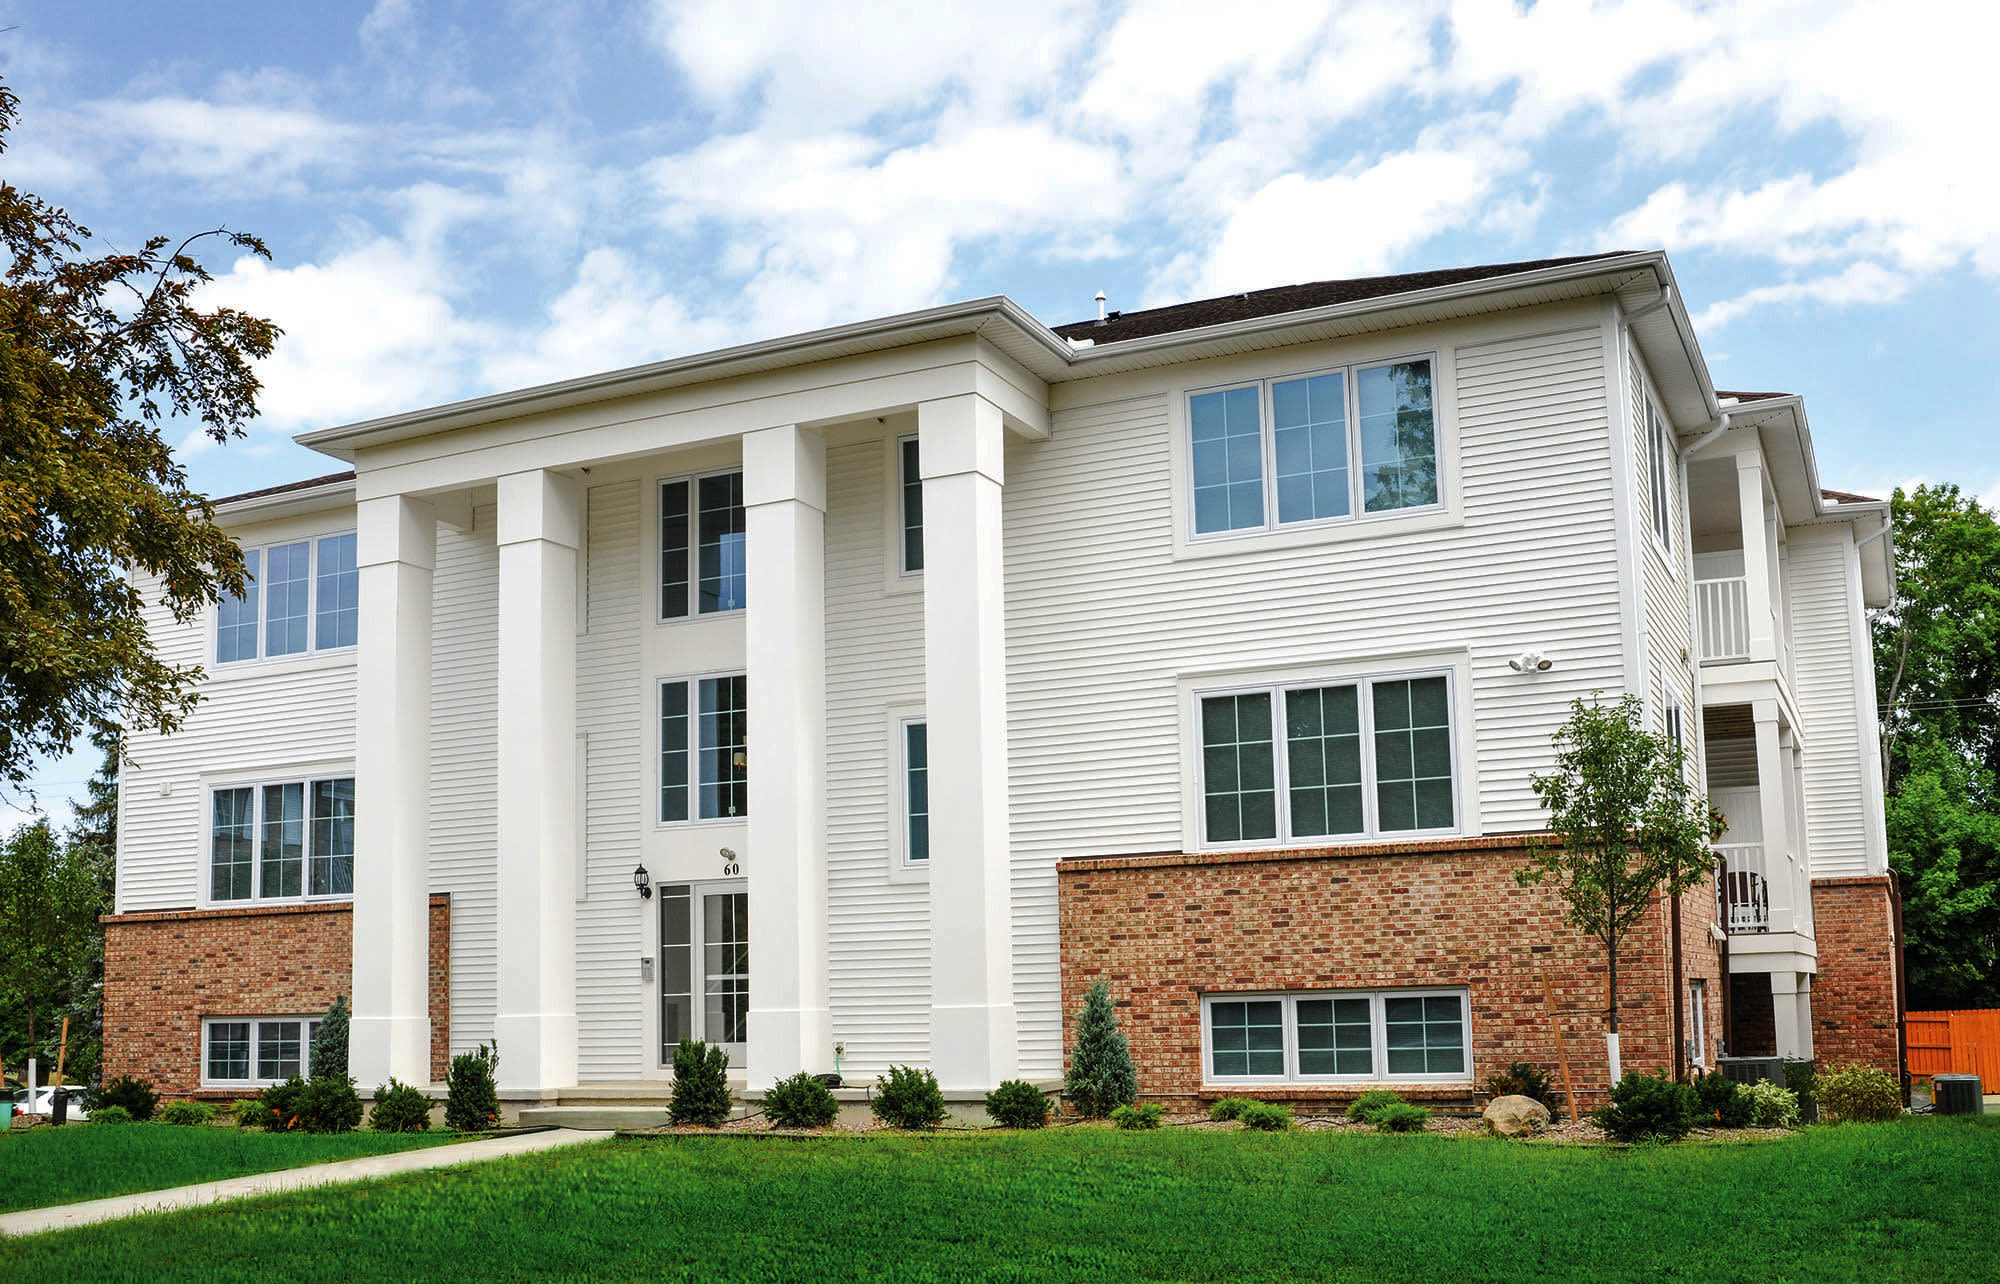 Apartments in Orchard Park, New York